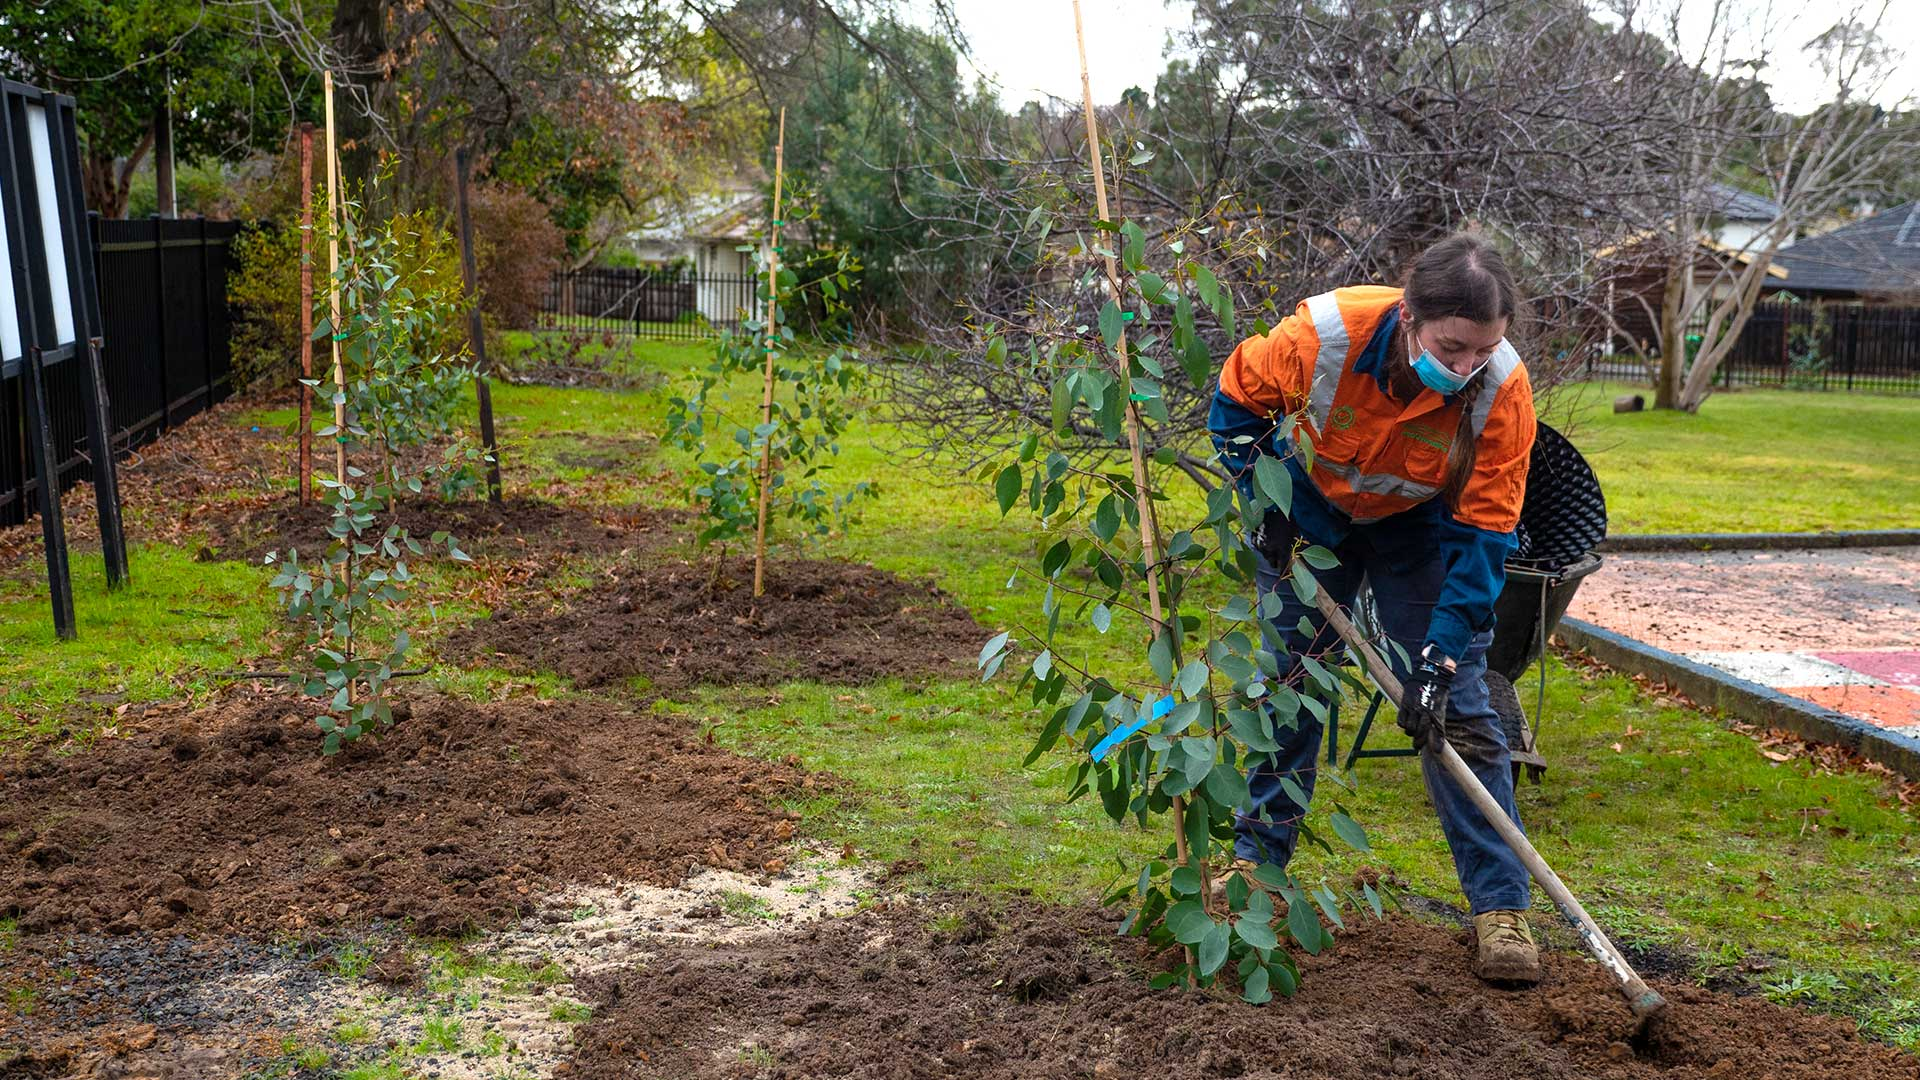 A gardener wearing protective clothing filling soil around a mature gum tree planted at Watsonia Primary School.